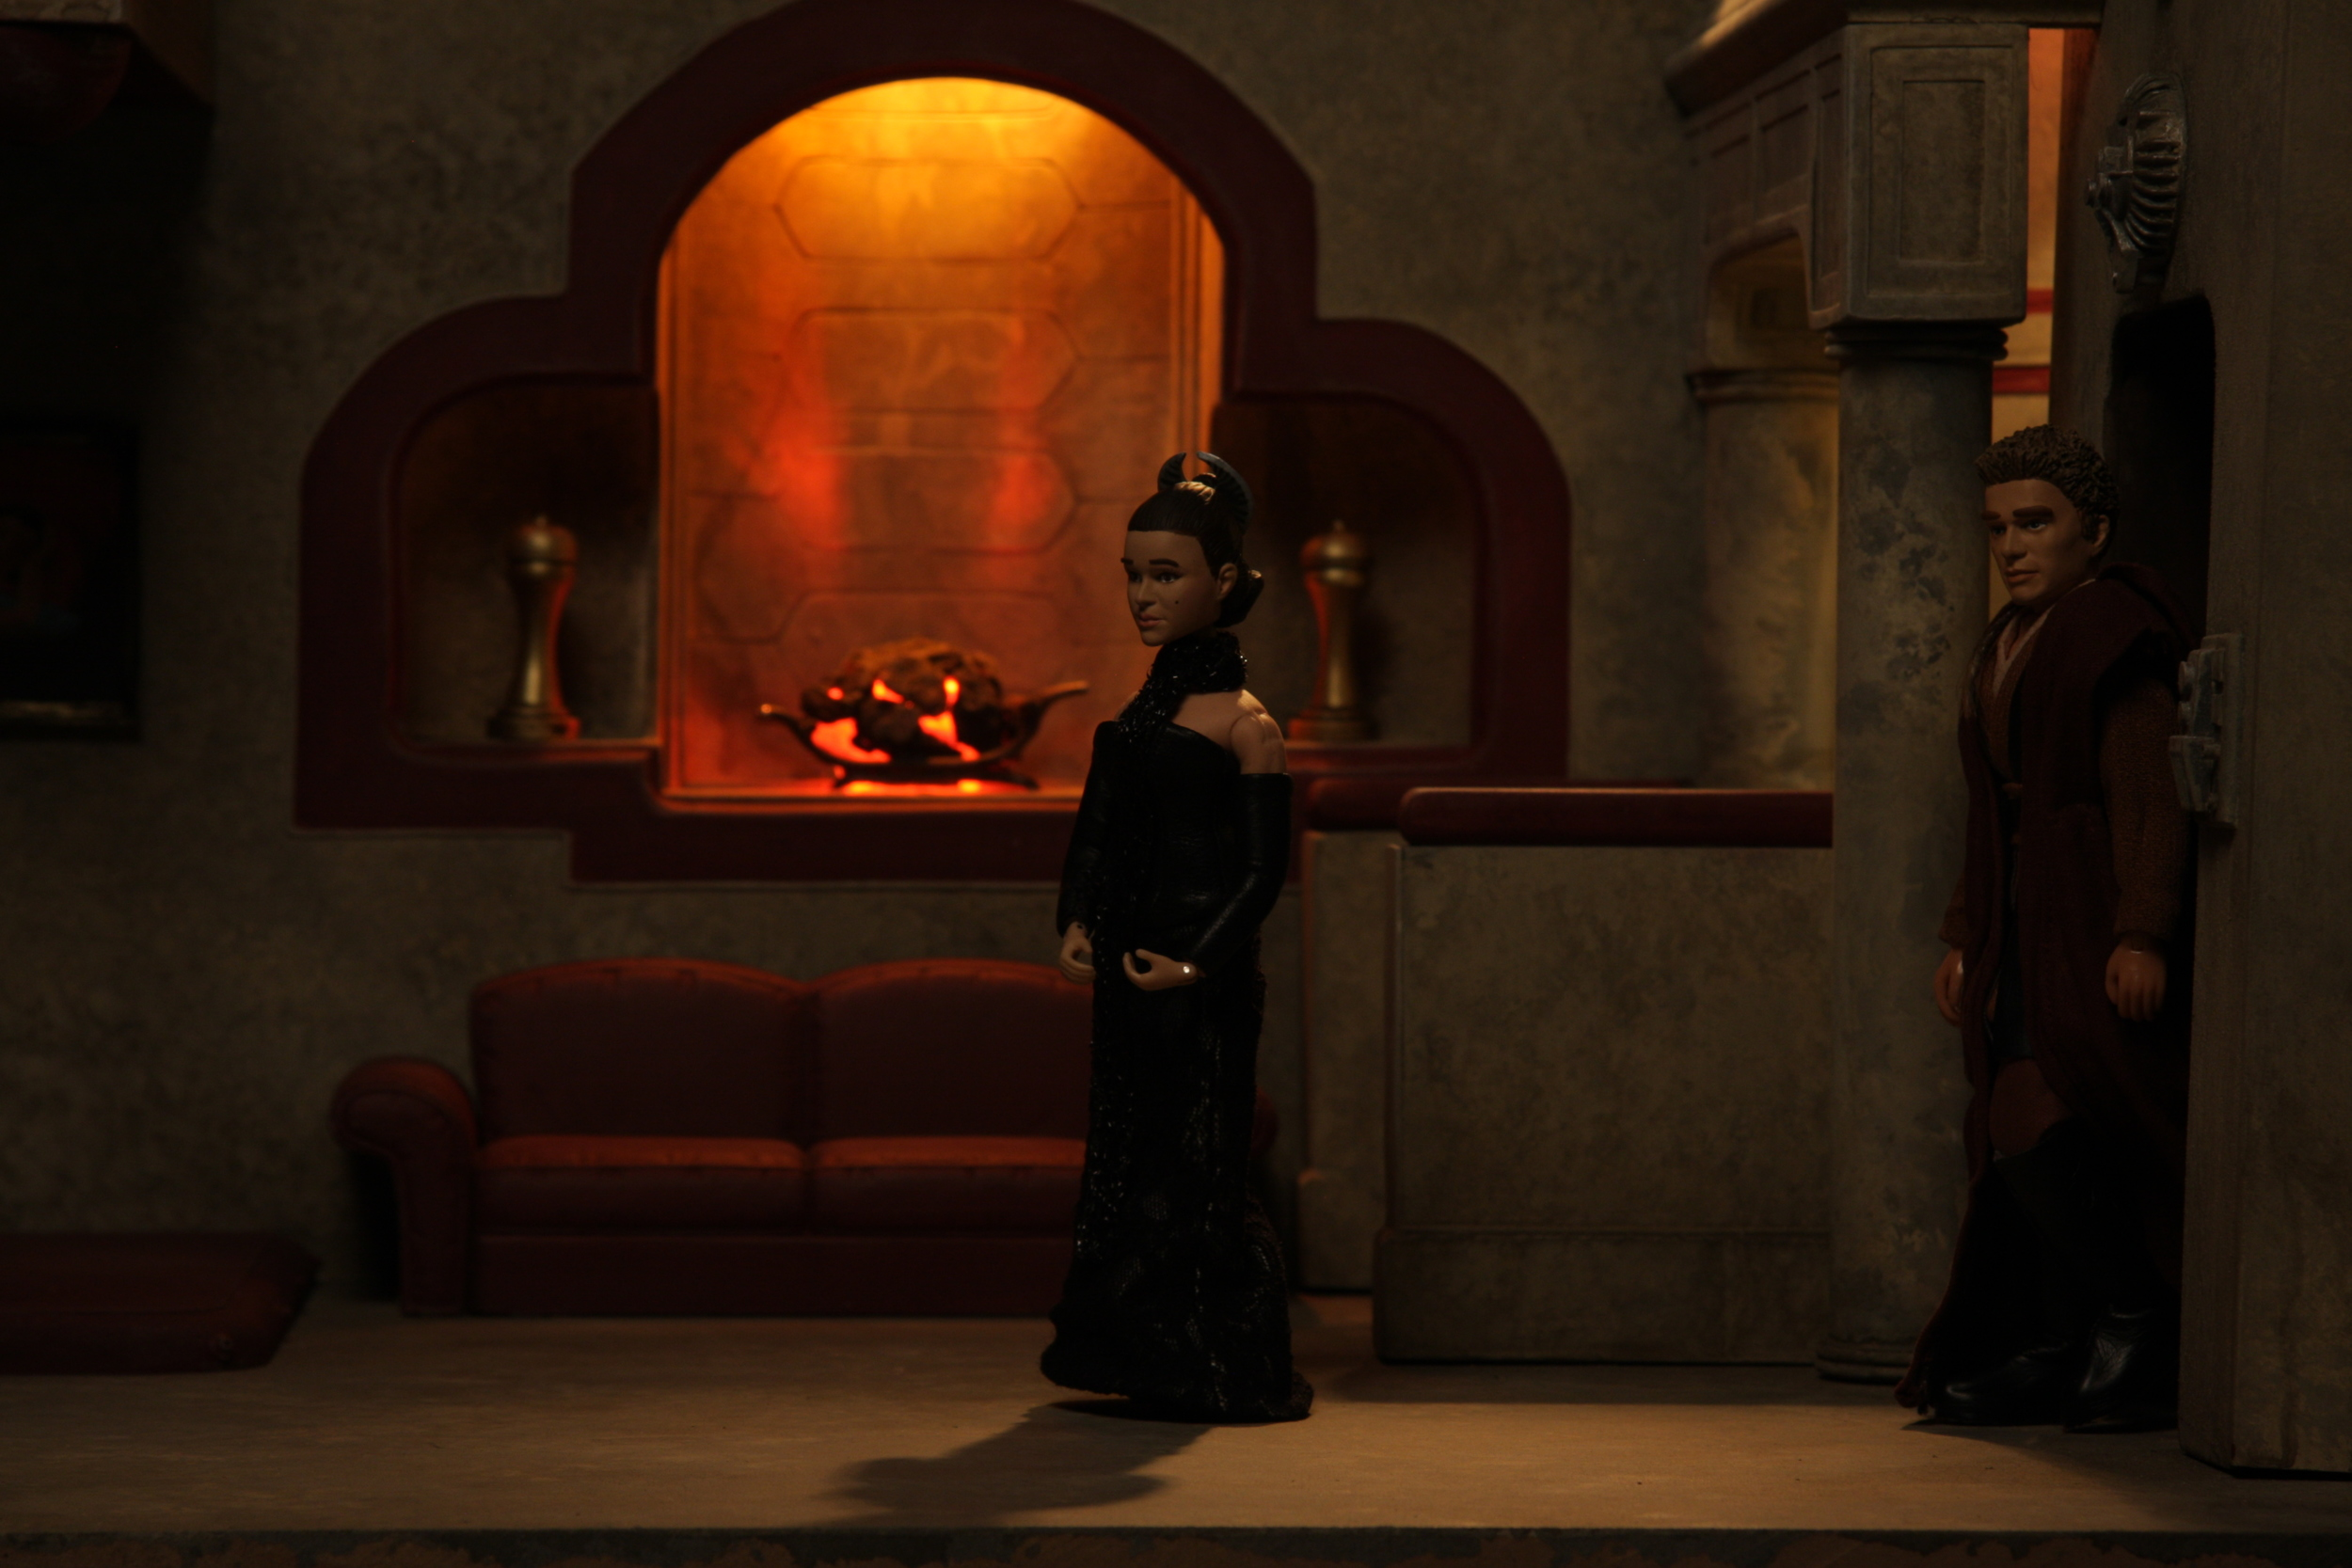 Robot Chicken Star Wars 2 Image 10.jpg